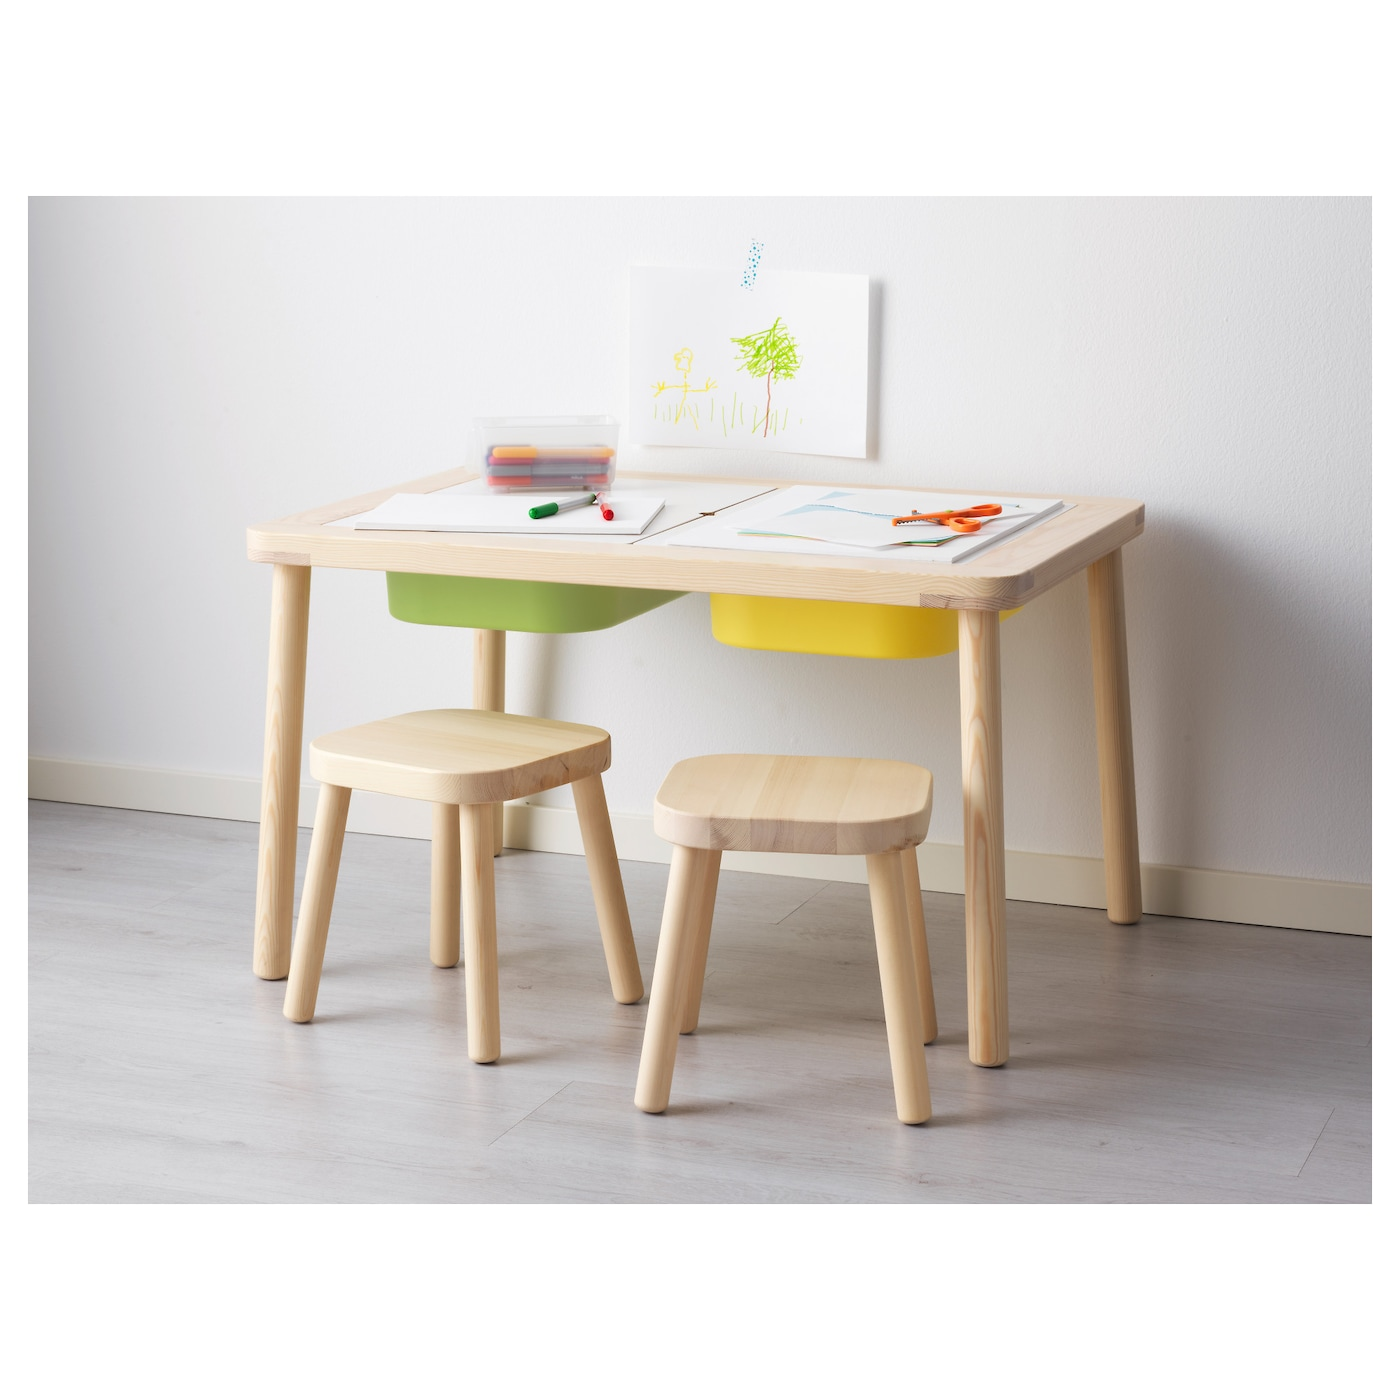 Flisat children 39 s table 83x58 cm ikea for Table ikea blanche